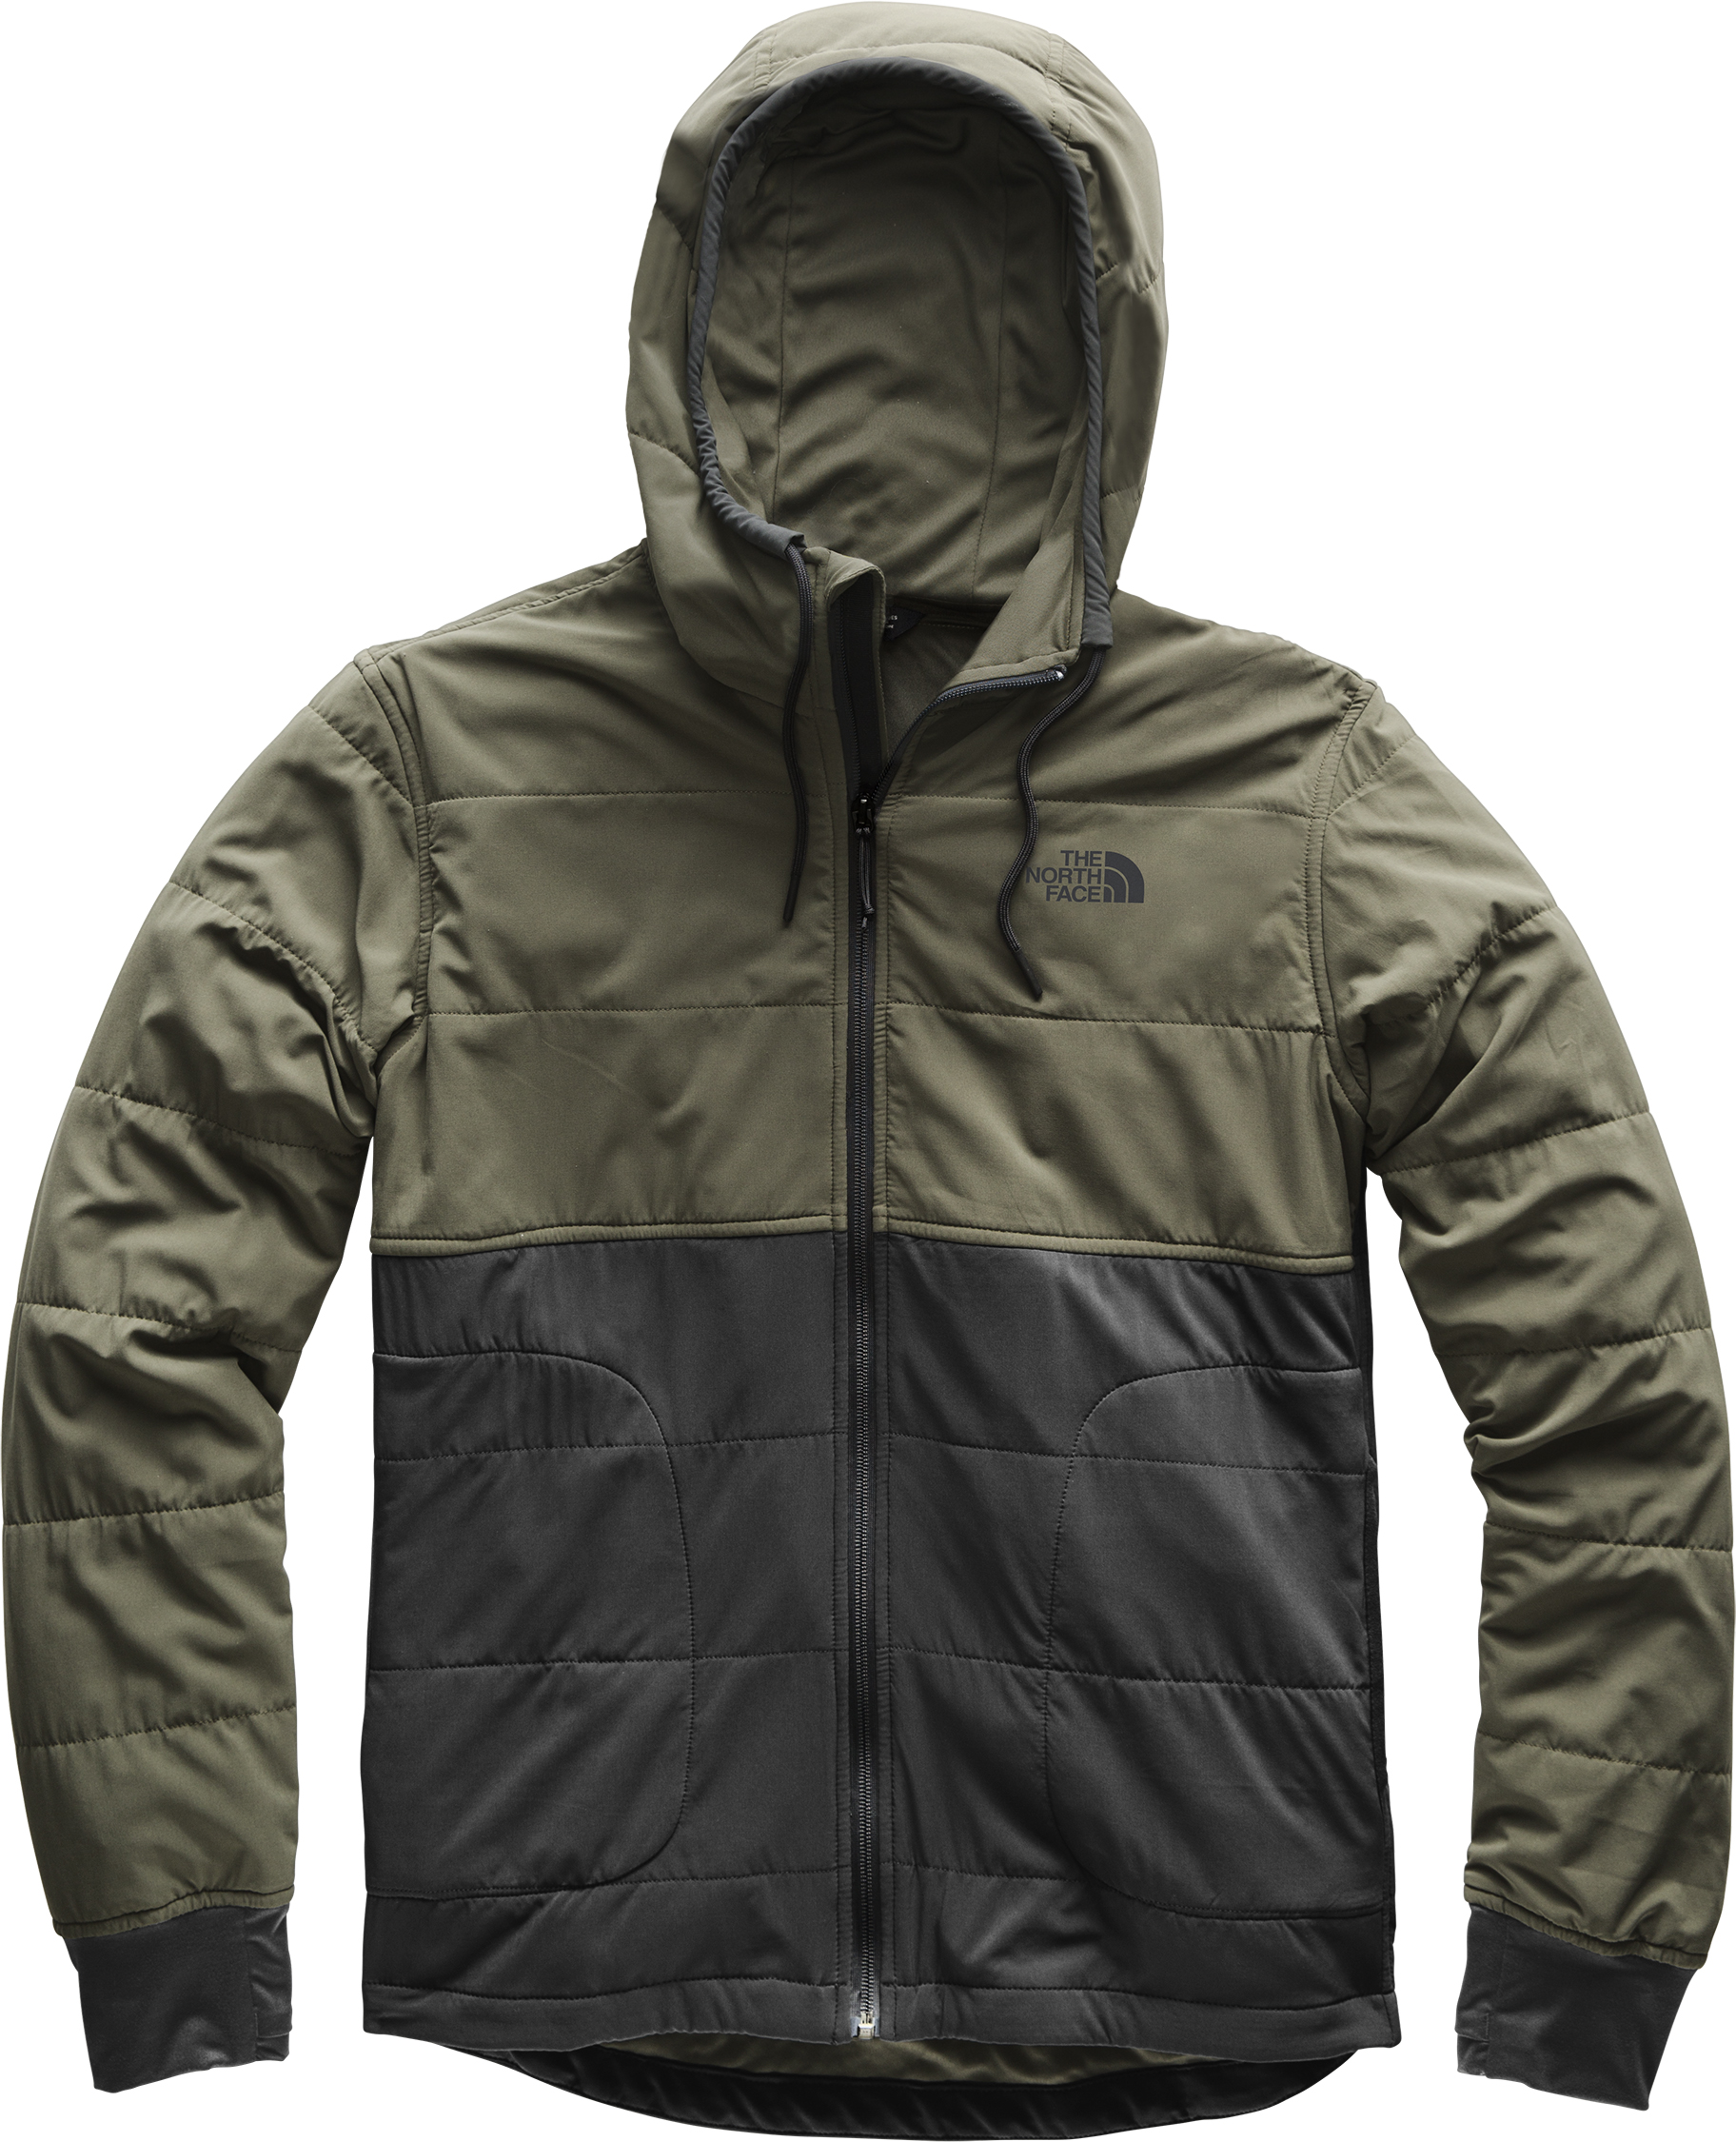 31b4b4a8d The North Face All products | MEC